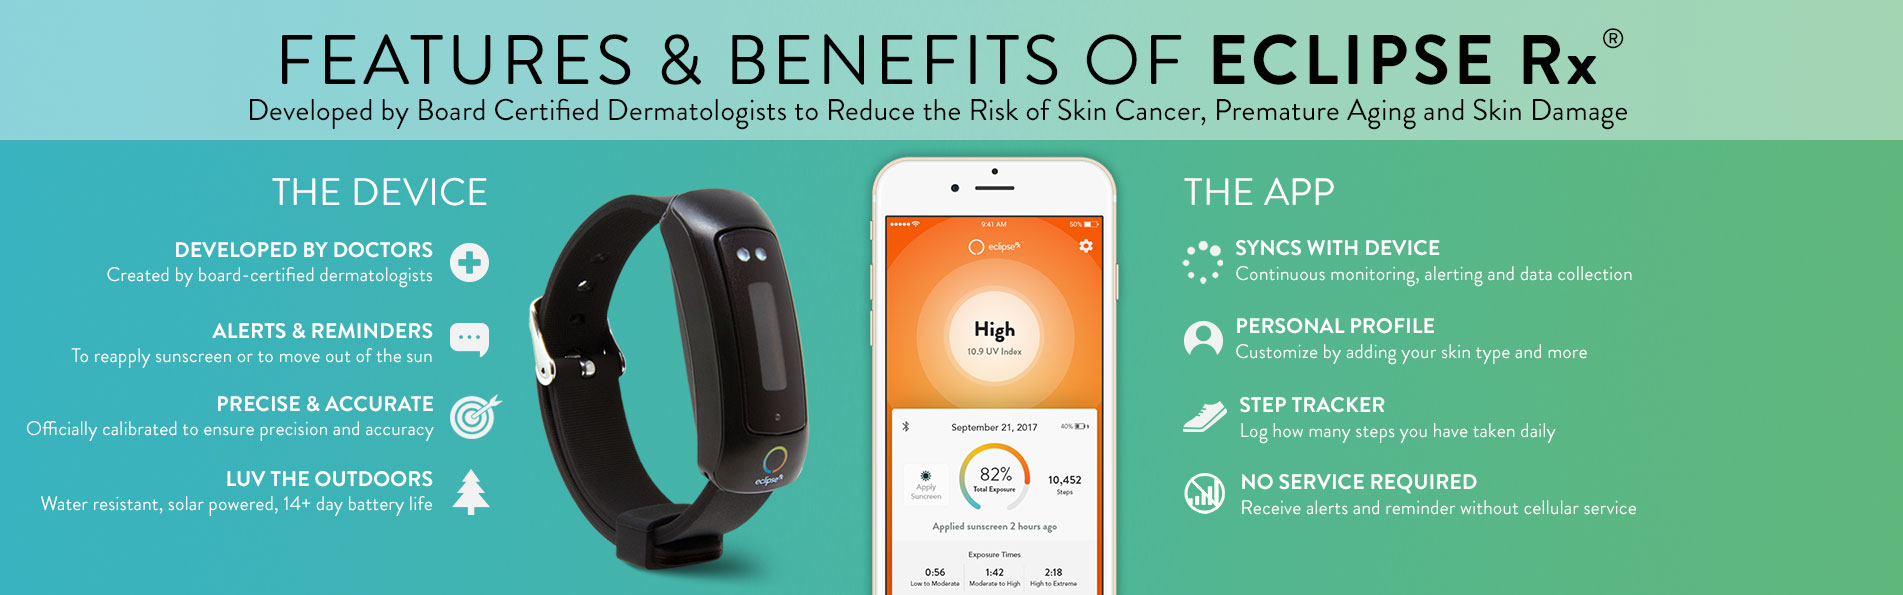 Sun Protection - The Features and Benefits of Eclipse Rx Sun Monitoring Device and Mobile App